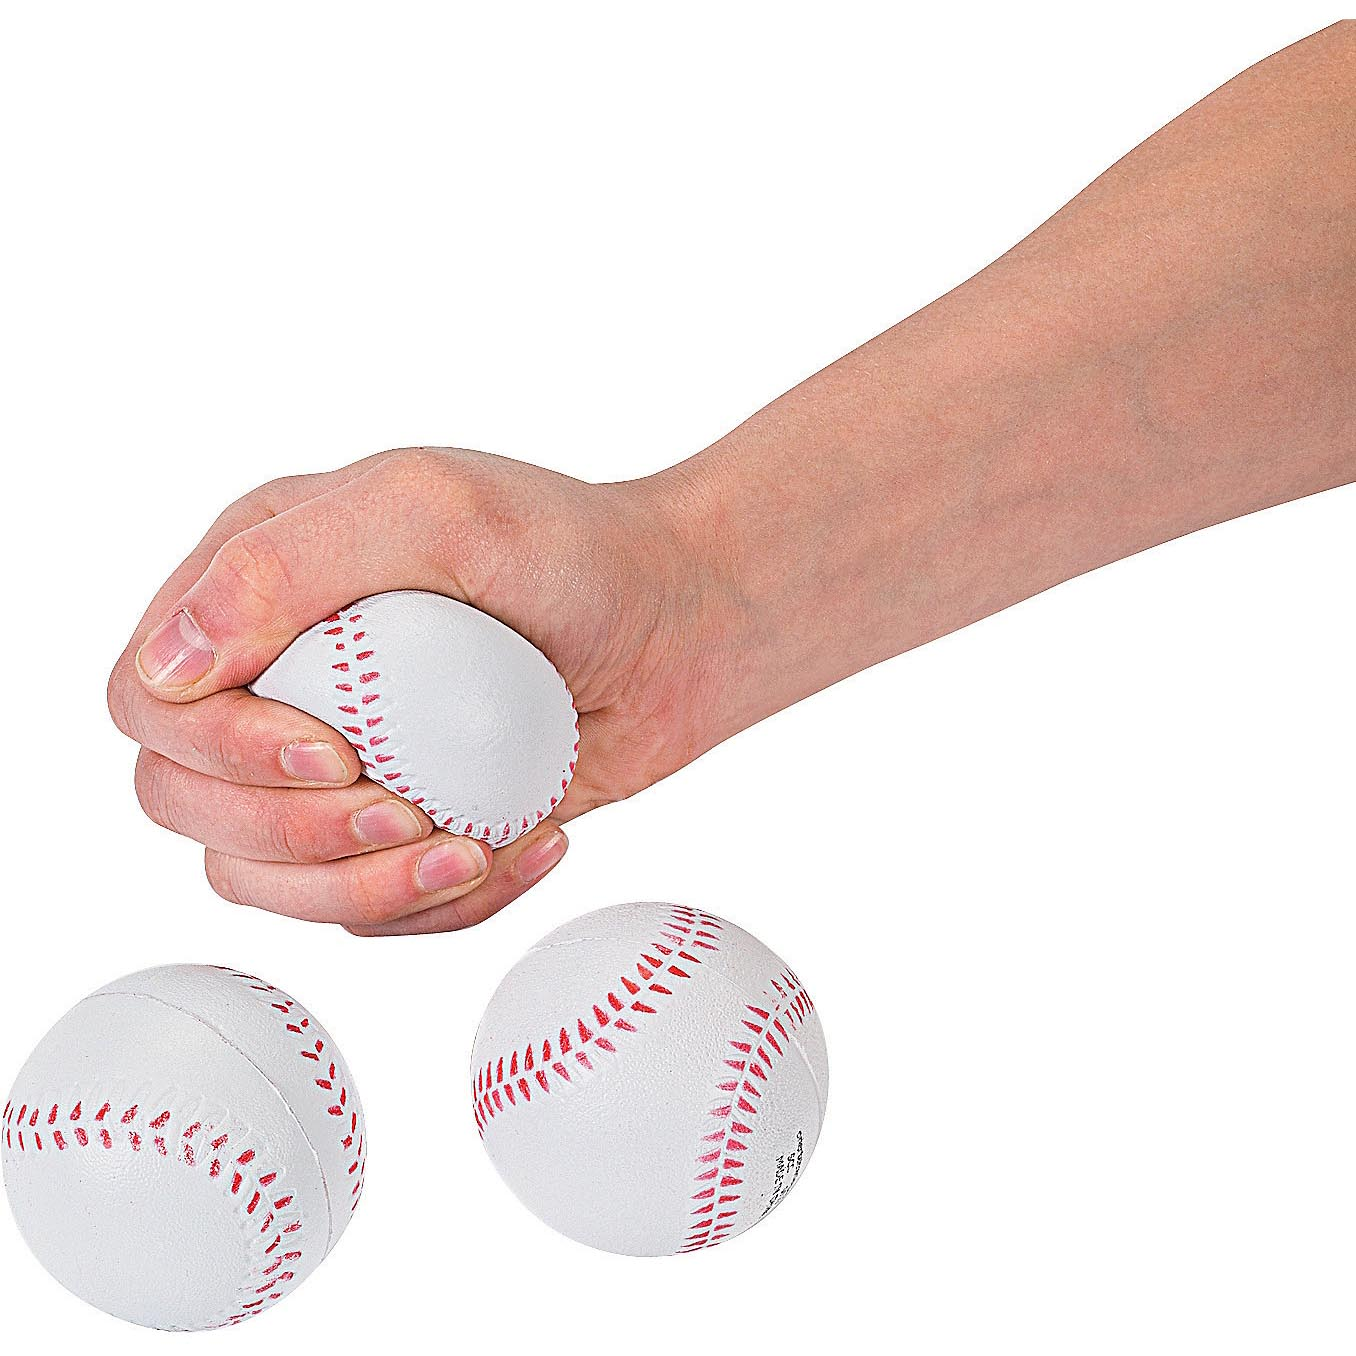 Lot of 12 Foam Baseball Stress Relief Squeezable Balls Party Favors by happy deals